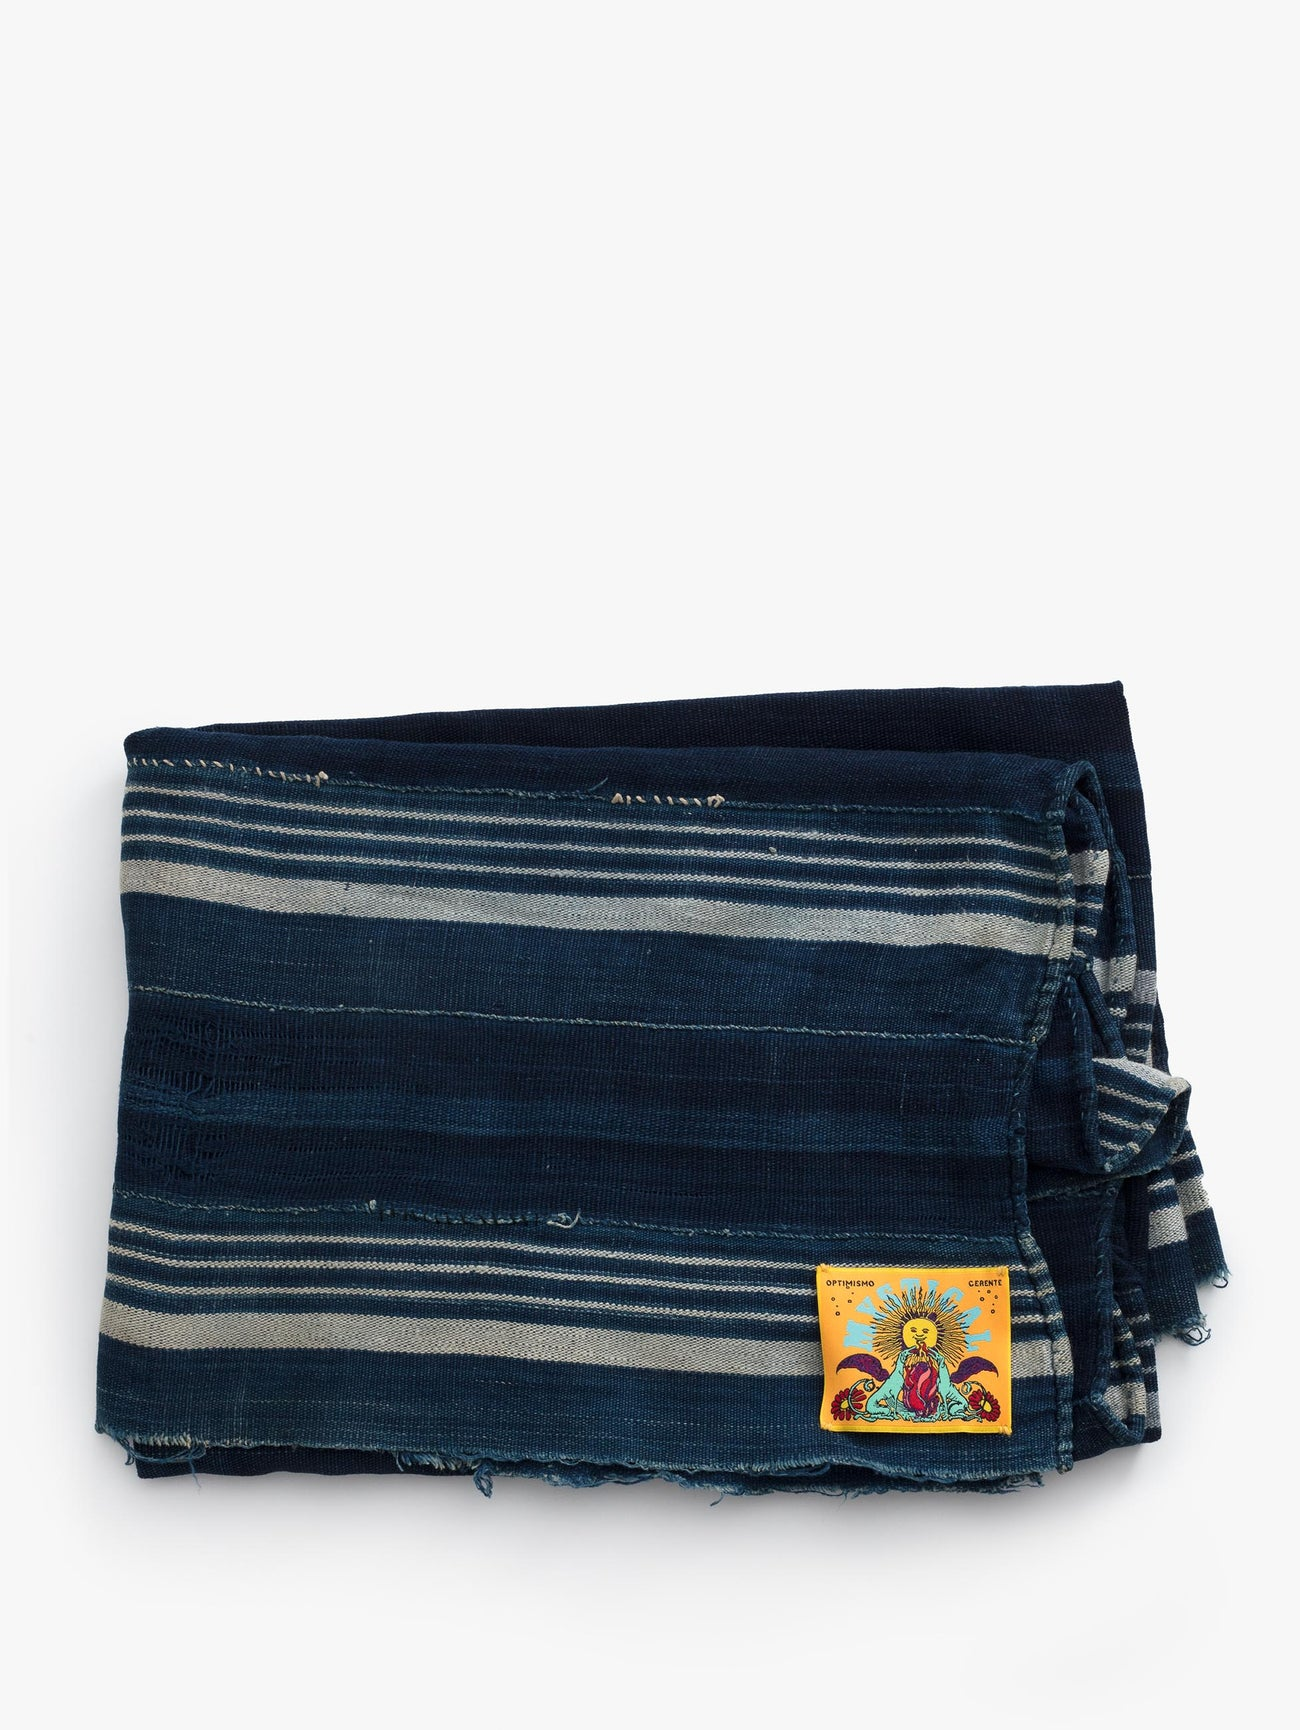 Blanket - Multi Stripe